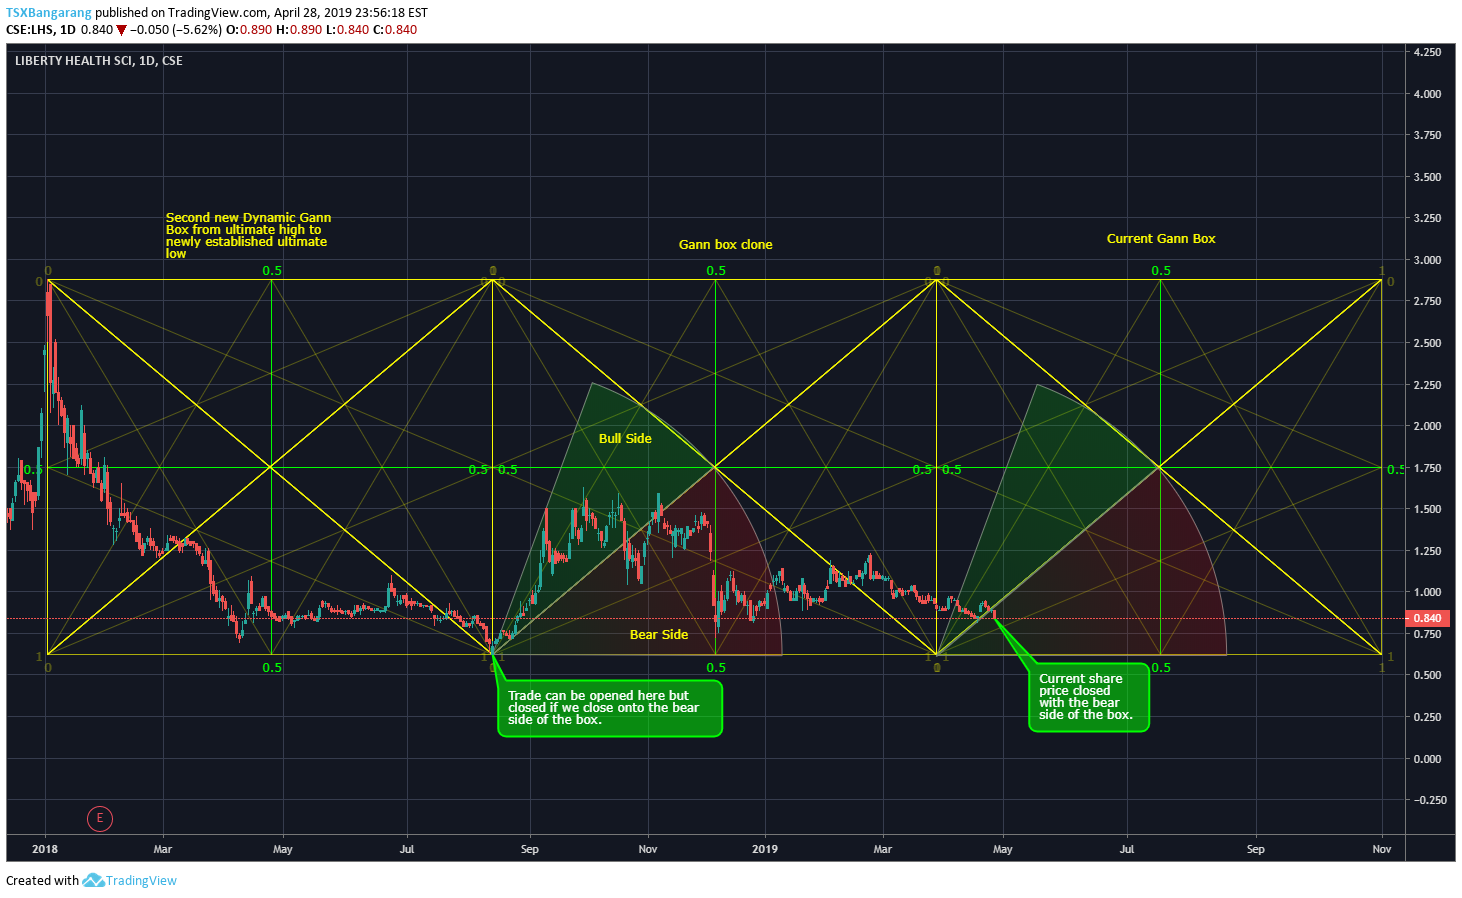 Let's get freaky with Gann Box Analysis and Time Cycles para CSE:LHS